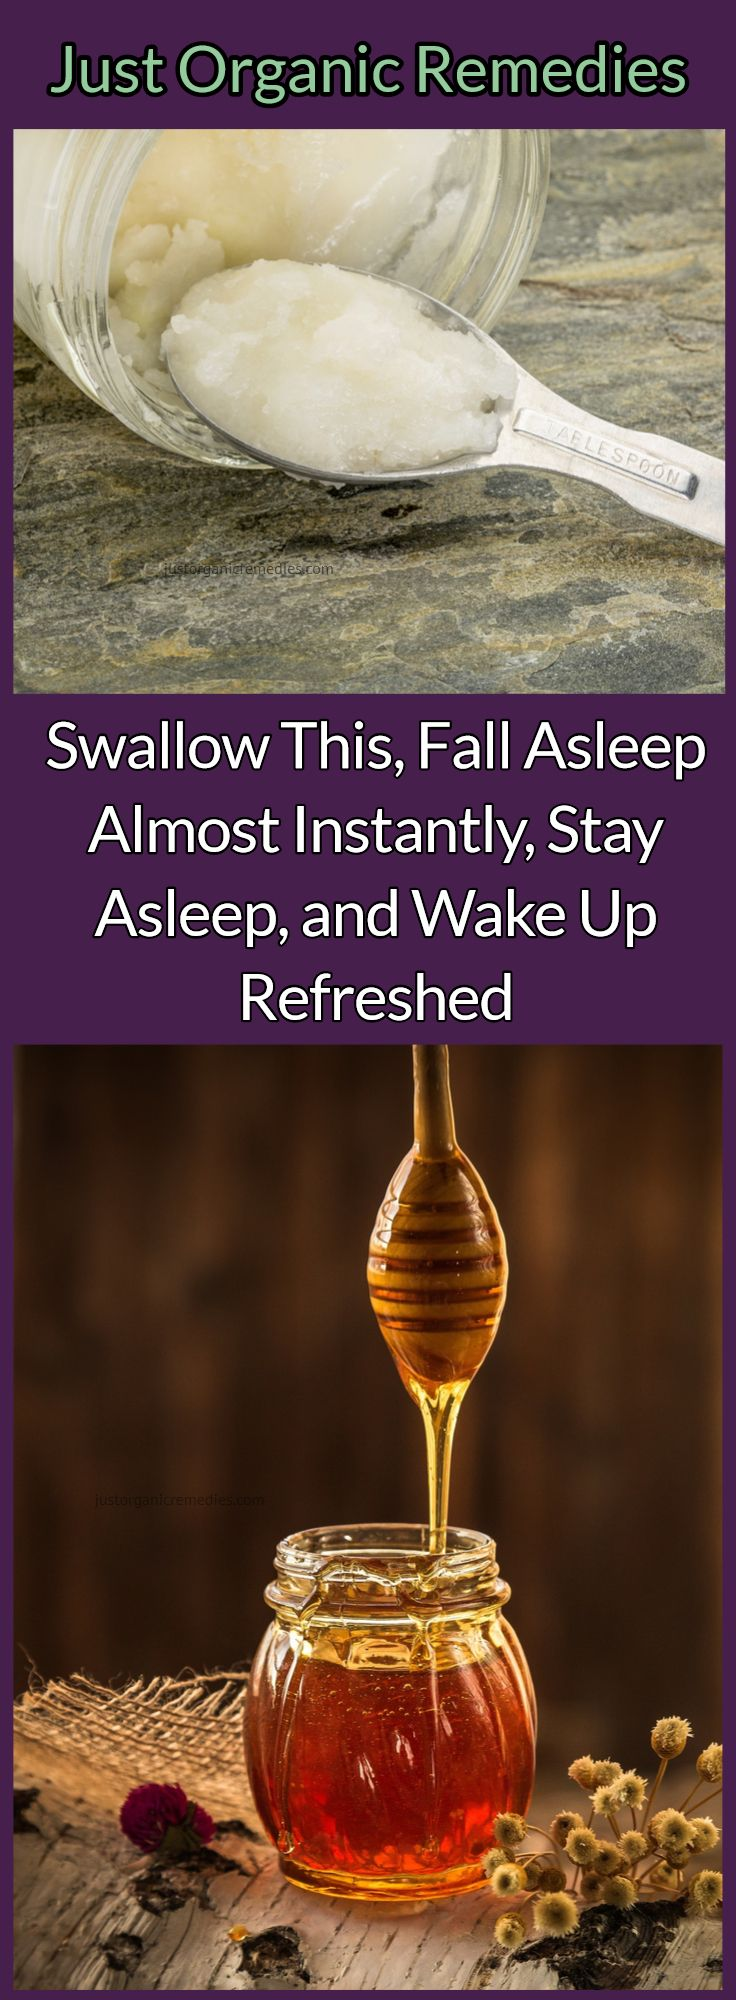 Millions of people worldwide face sleeping issues every single night. Millions of people suffer from insomnia as well, and it negatively affects their everyday life. However, you should not despair if you are one of them, as there is a completely natural remedy that will restore your sleep and will help you wake up fresh and in a good mood. #honey #coconutoil #seasalt #insomnia